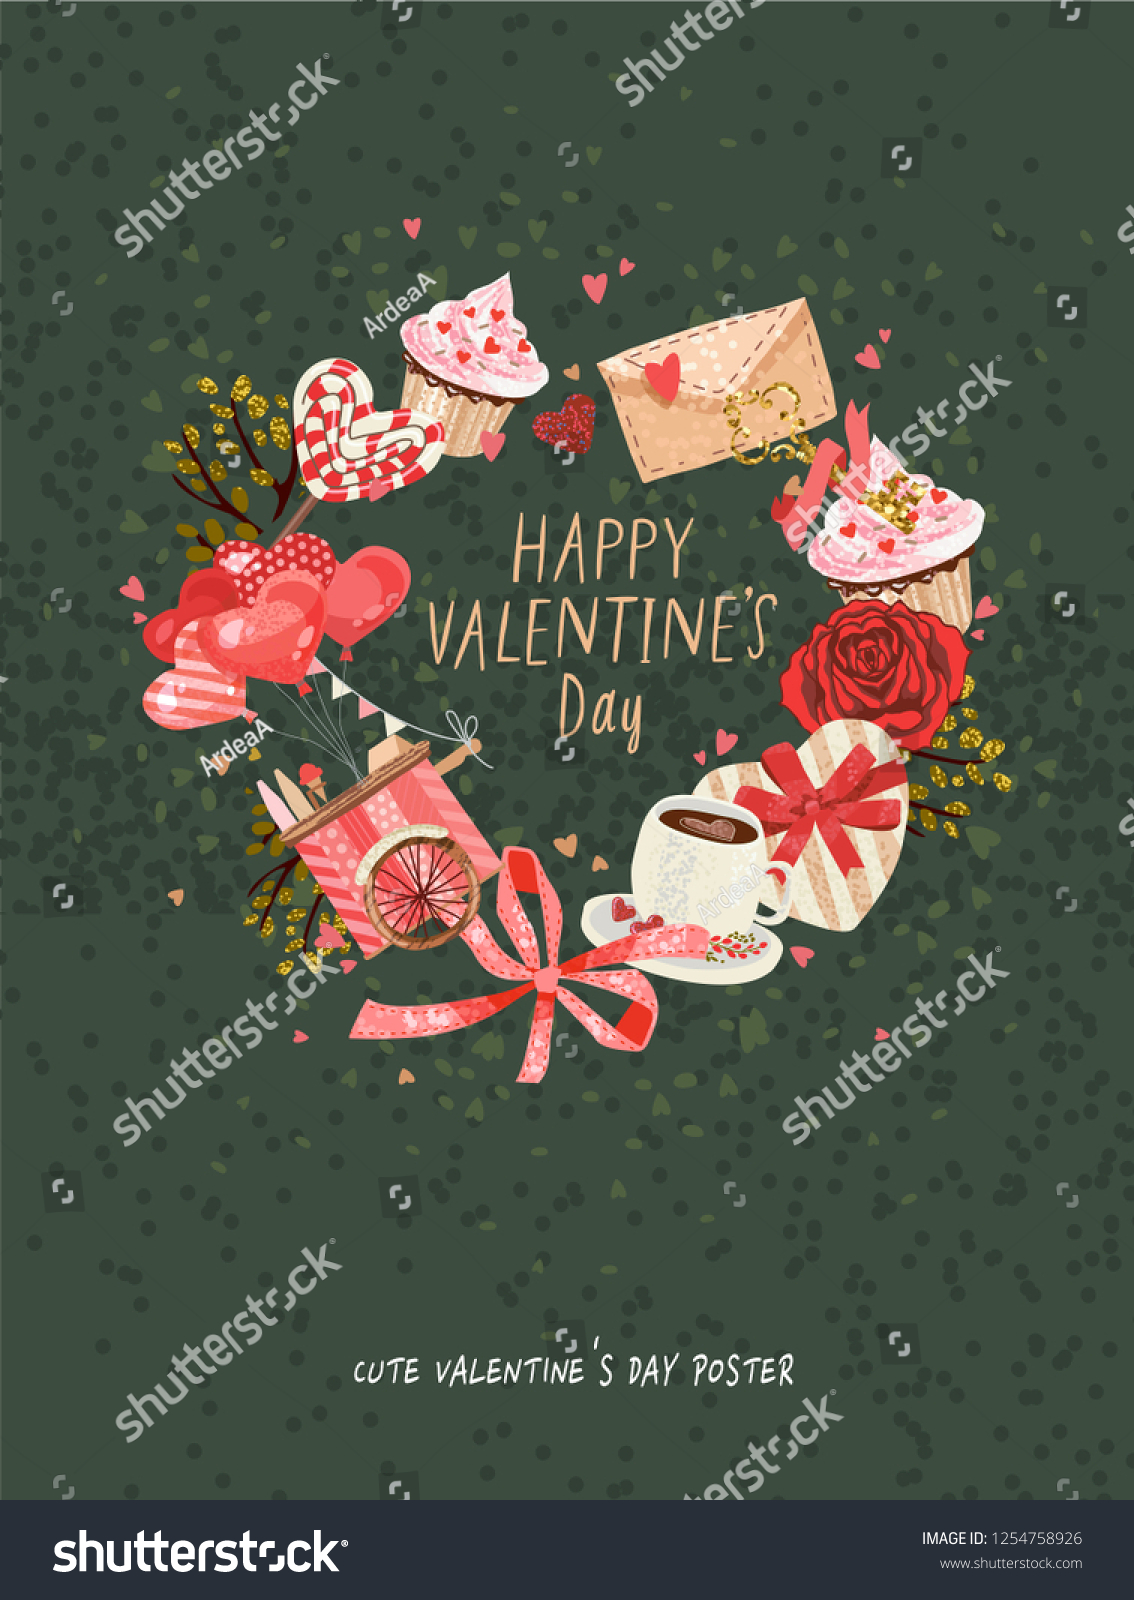 Cute Poster Valentines Day Greetings Heart Stock Vector Royalty 1134x1600